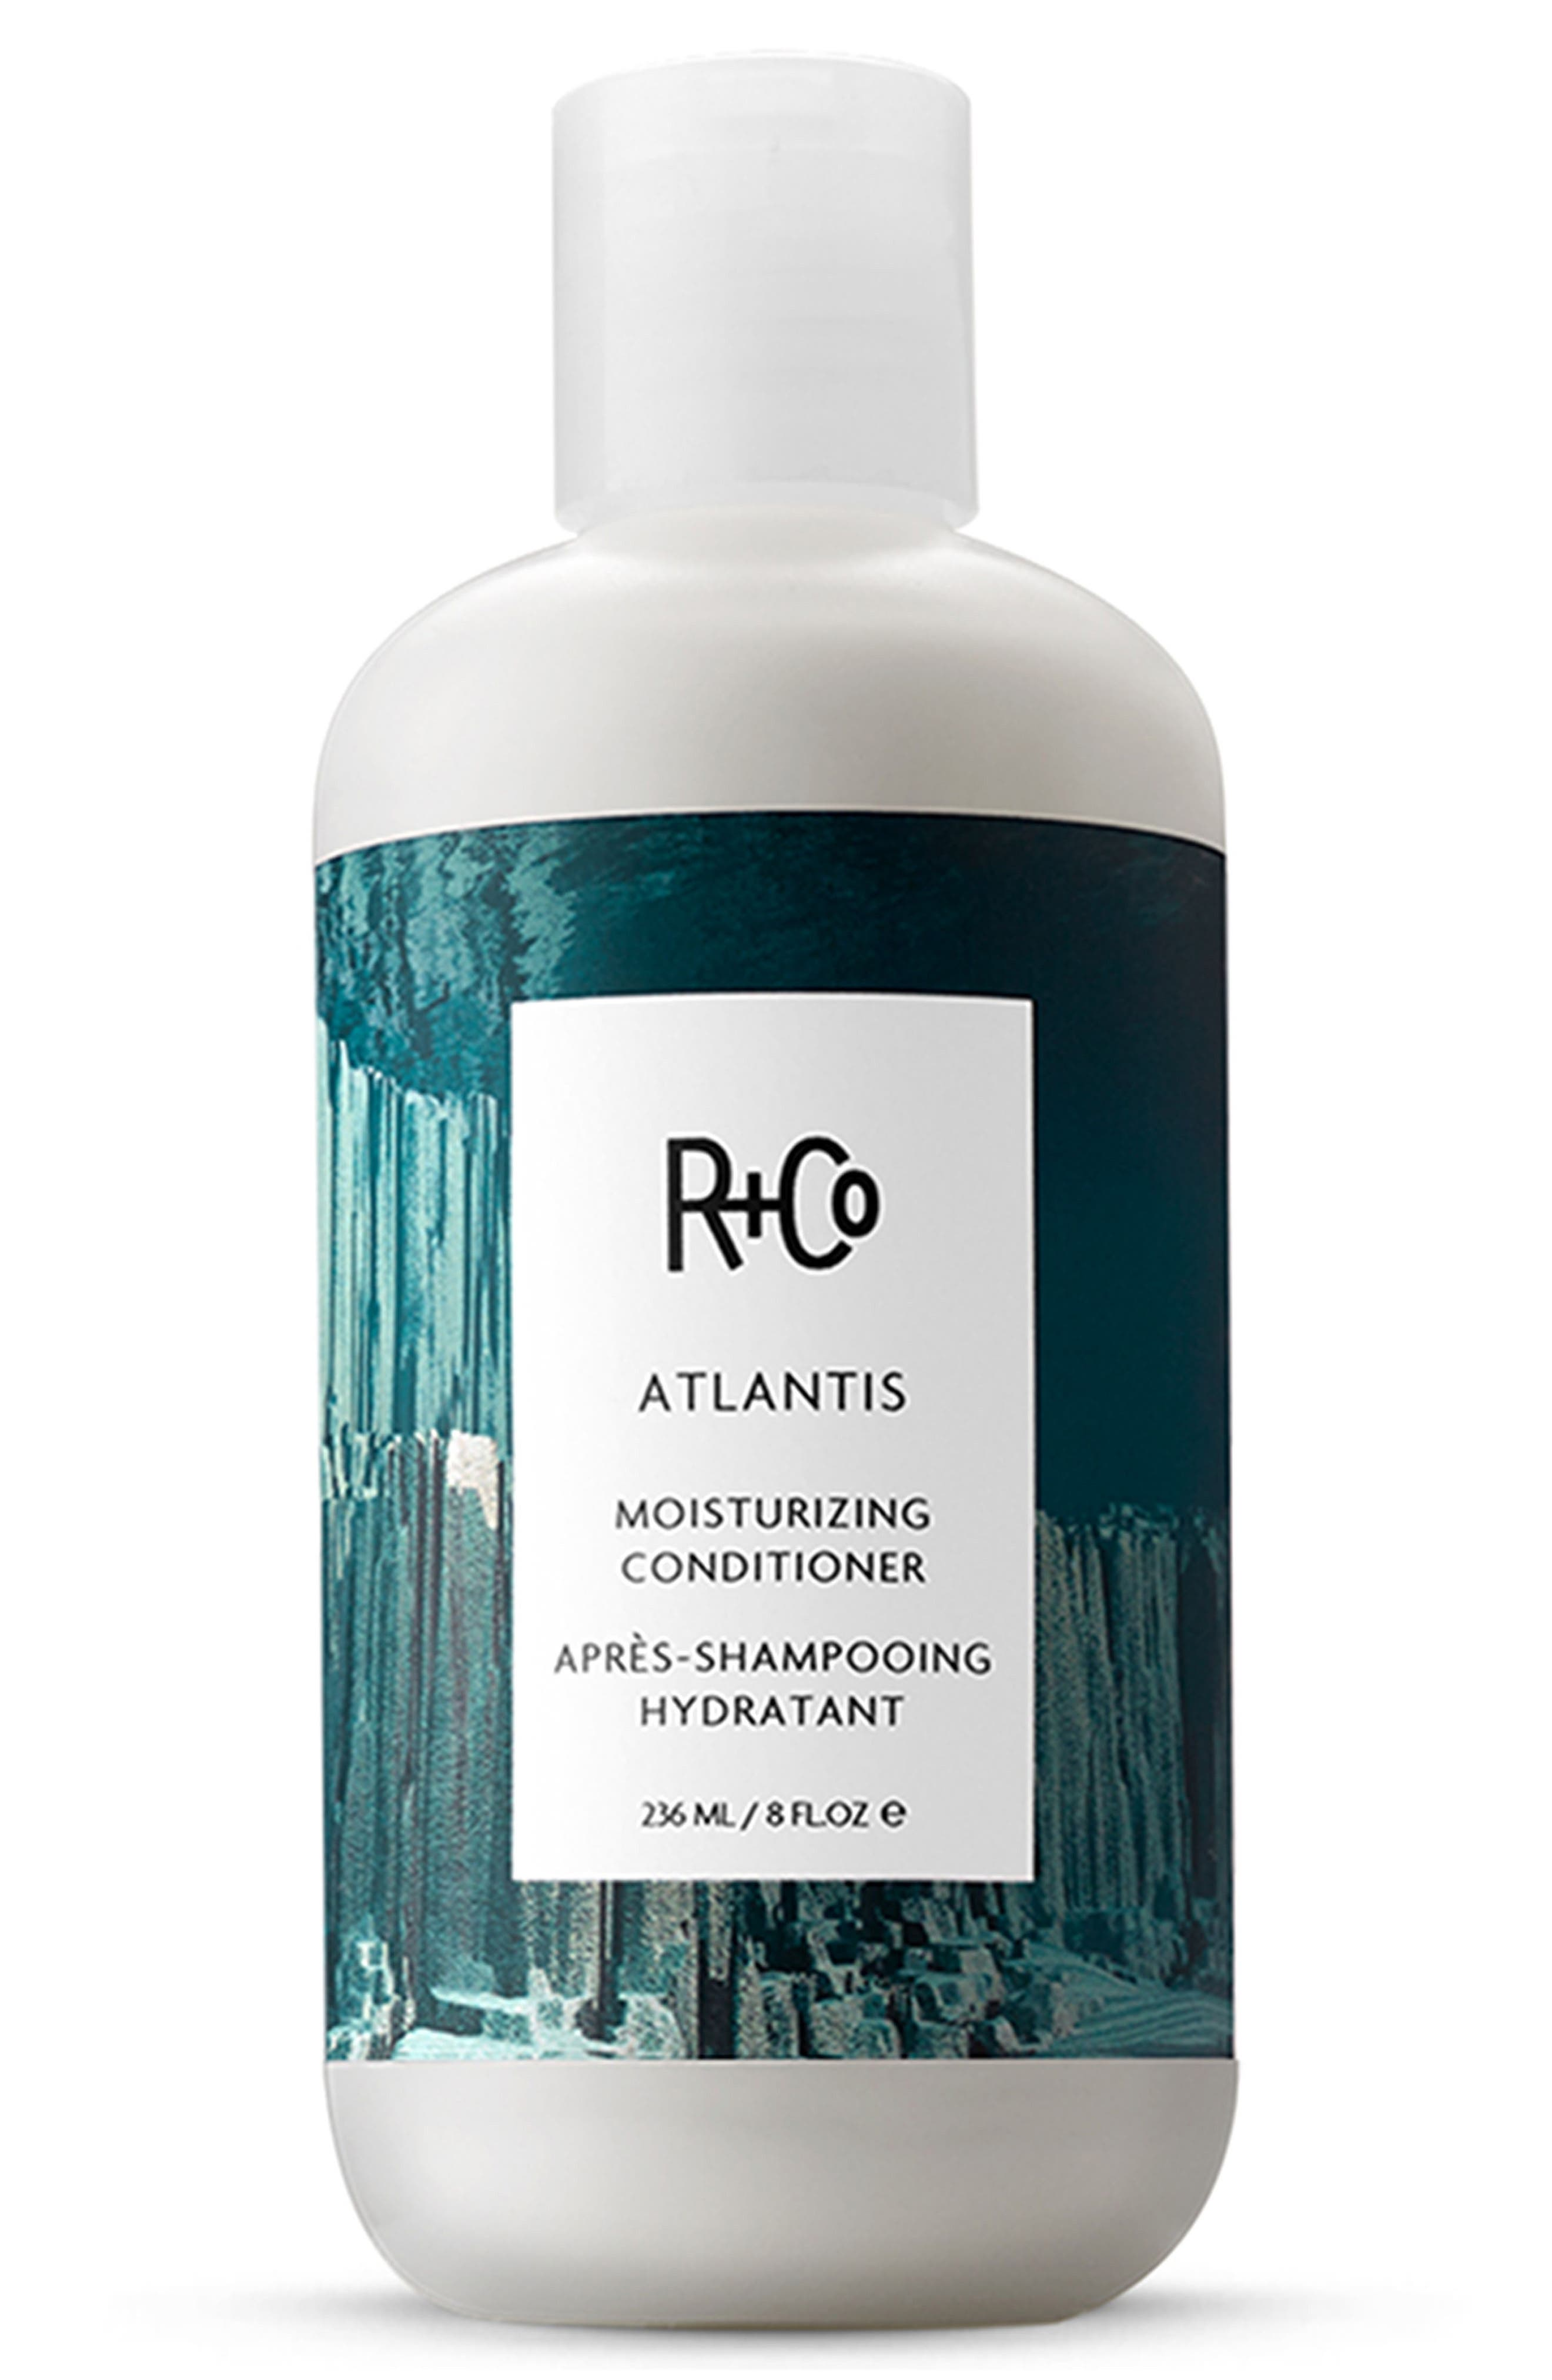 Alternate Image 1 Selected - SPACE.NK.apothecary R+Co Atlantis Moisturizing Conditioner